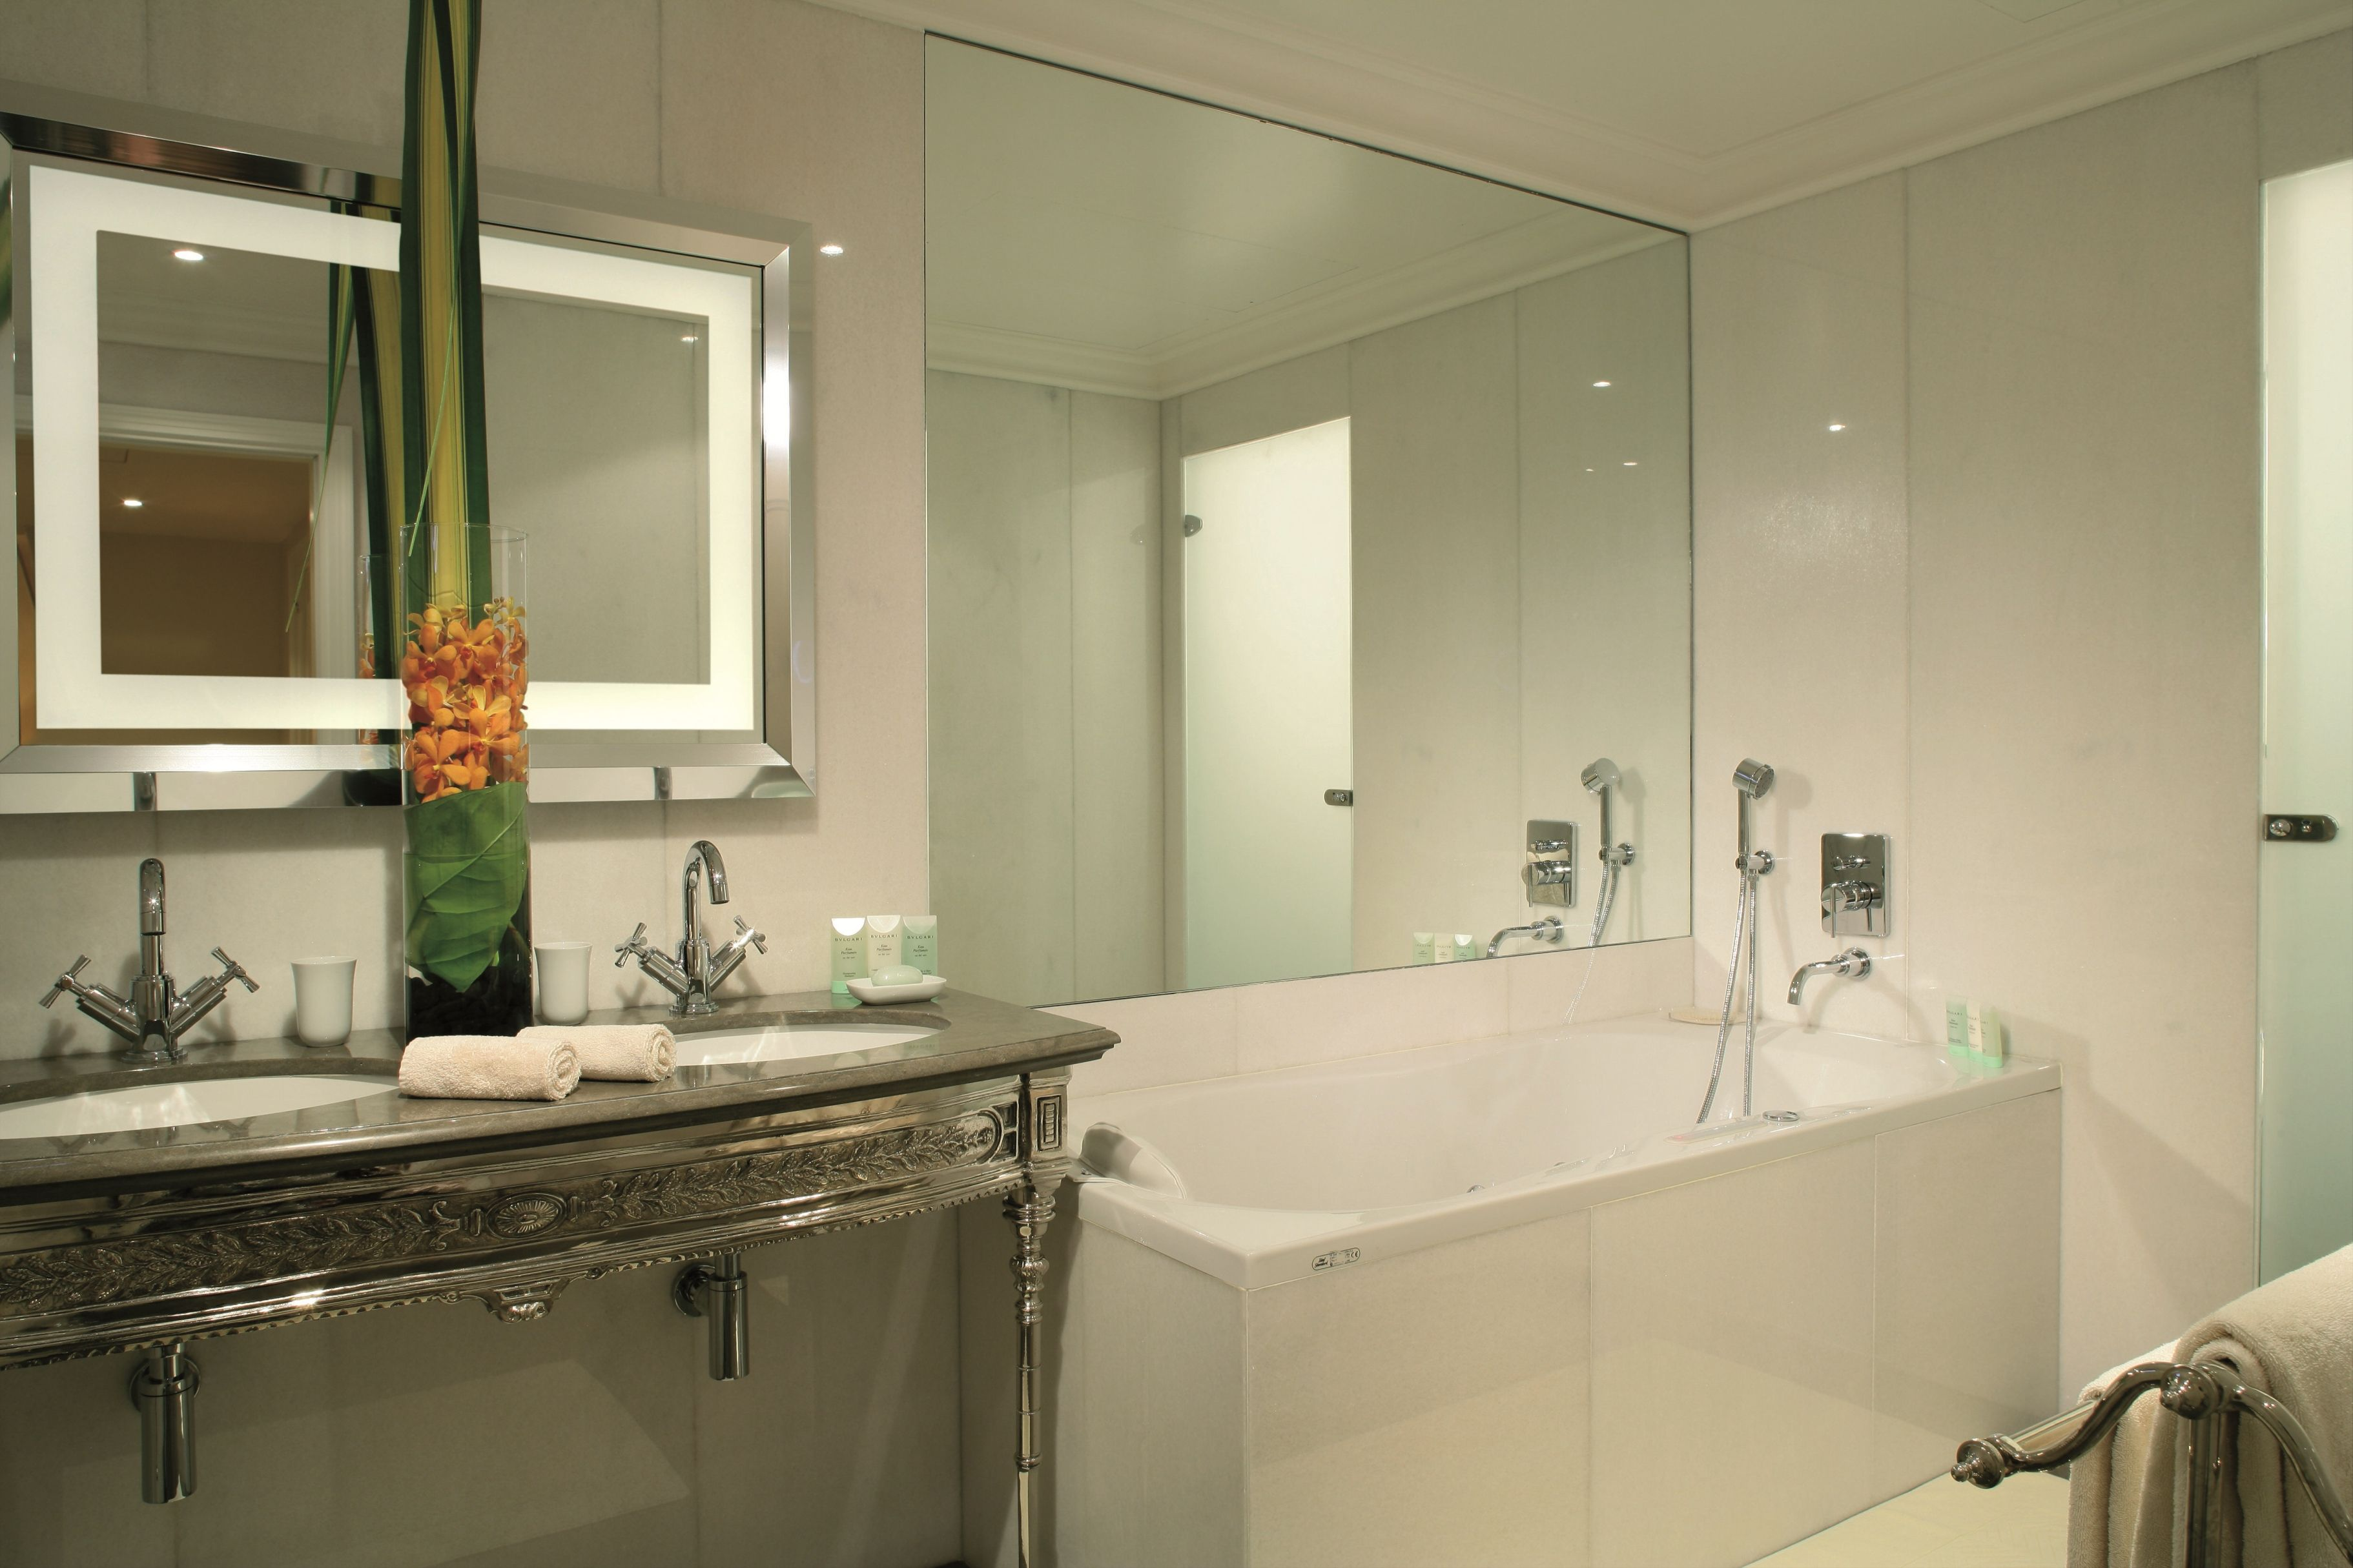 luxus hotel interieur paris angelo cappelini, luxurious presidential suite bathroom with a double sink, hydro, Design ideen